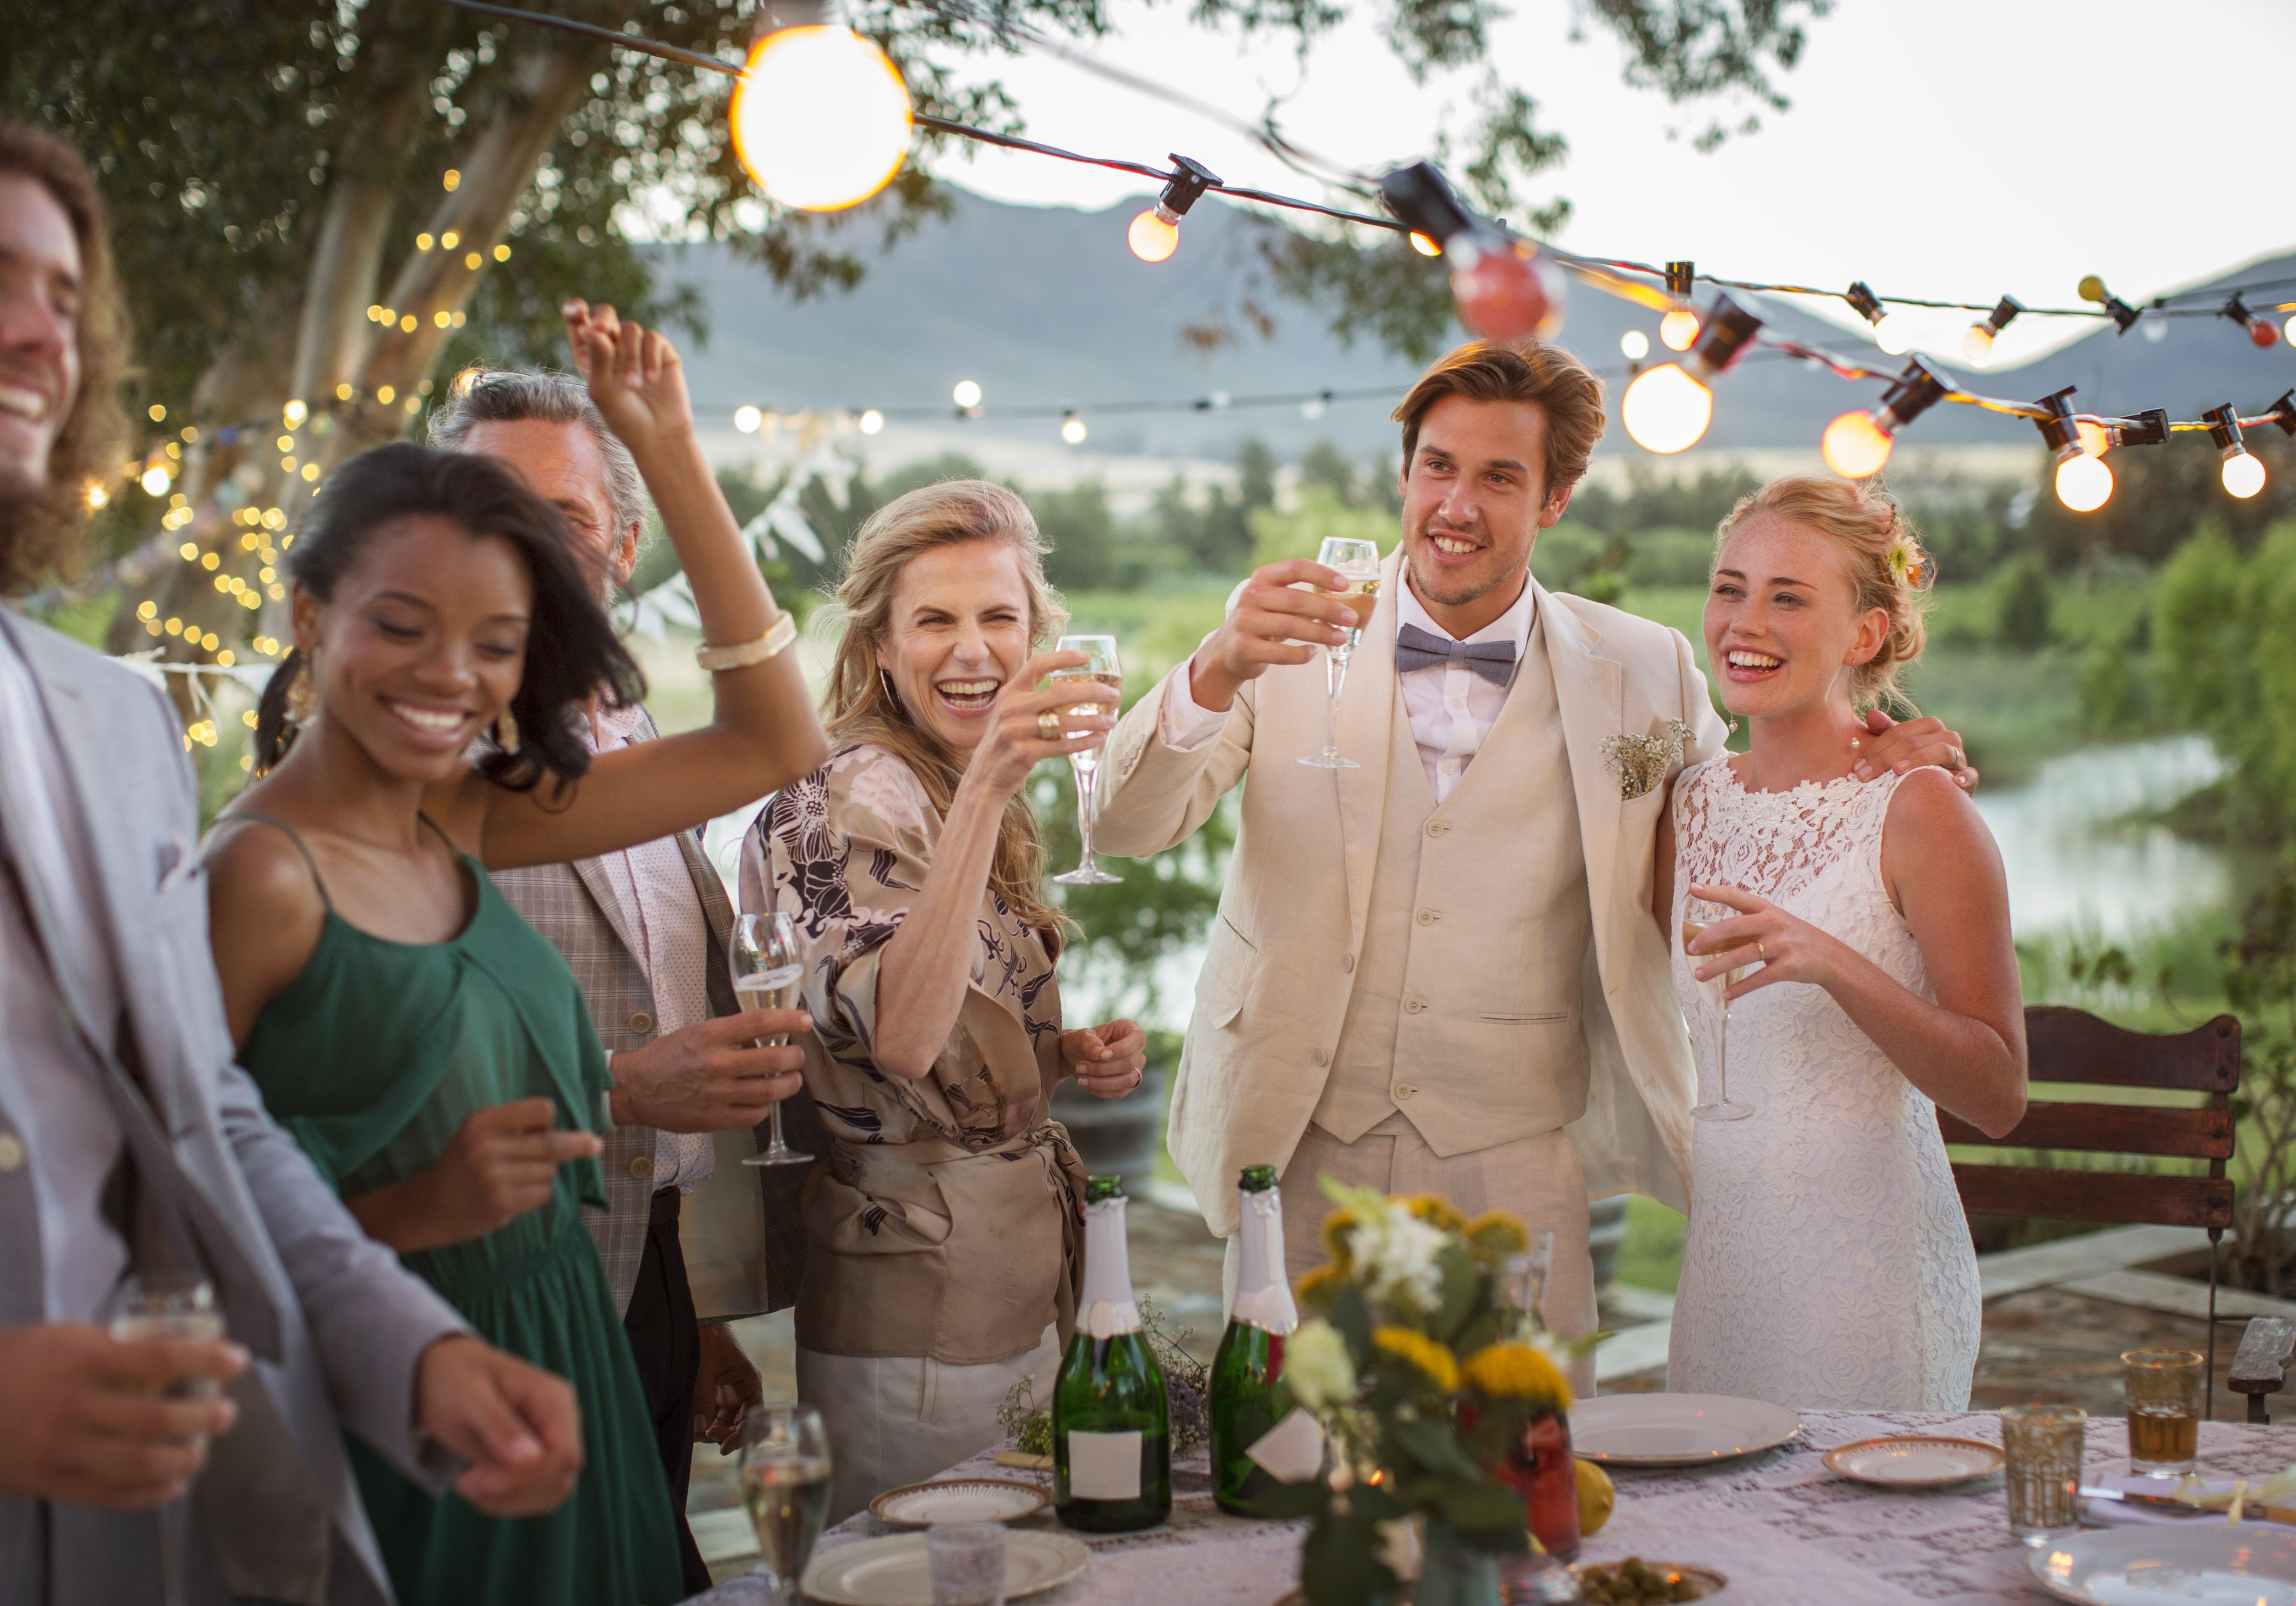 How to score a free wedding dress 7 free wedding templates you can use to create your guest list junglespirit Images